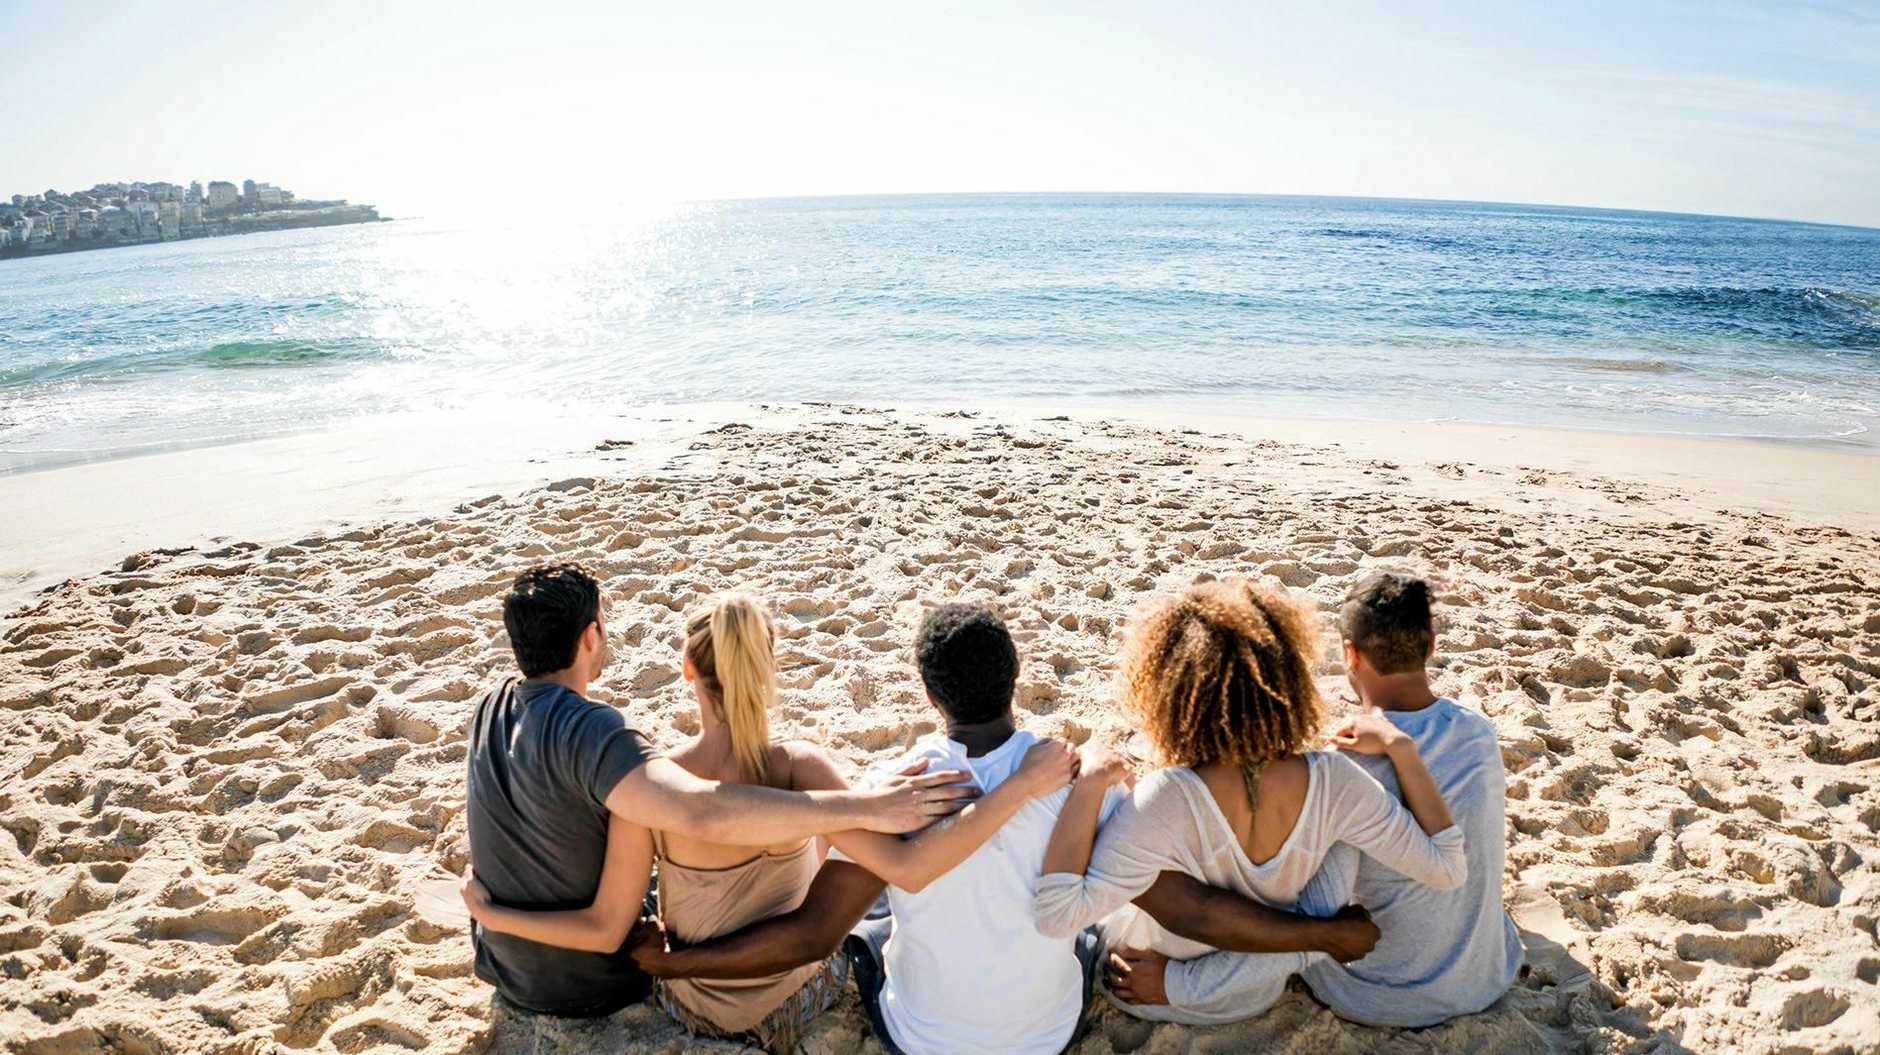 Happy group of friends relaxing at the beach and looking at the sea while sitting in the sand